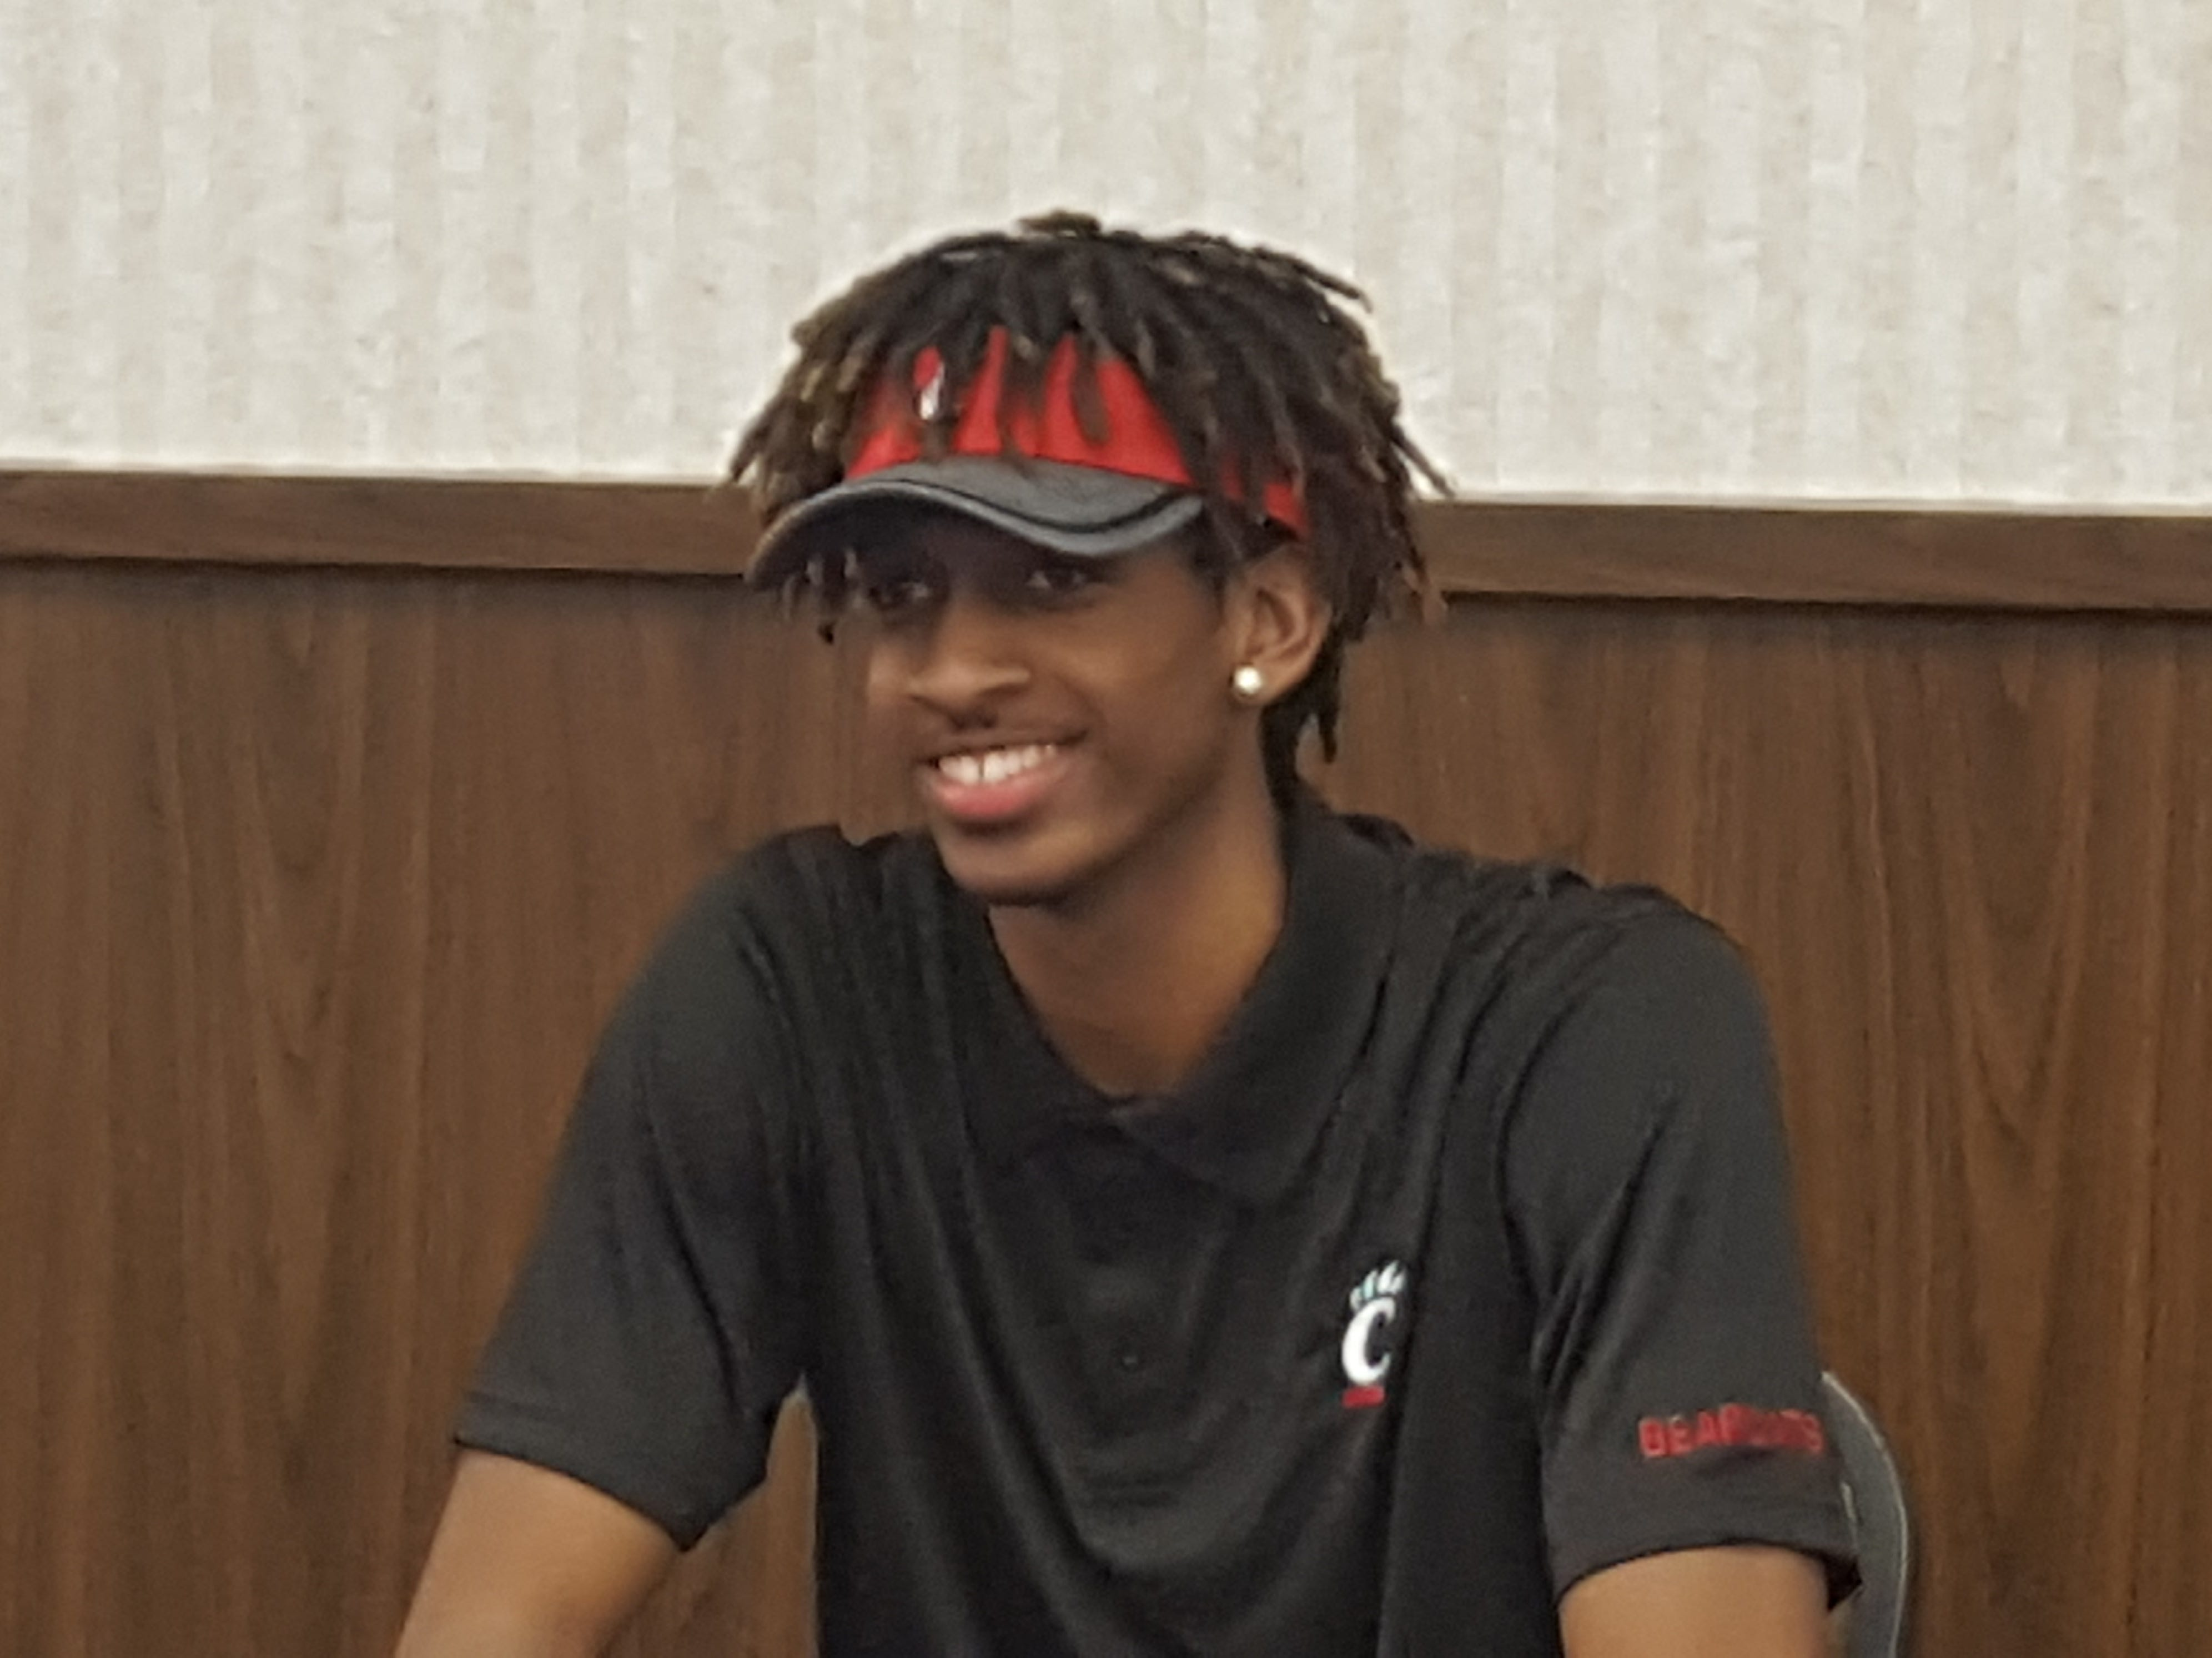 Bryant Johnson of Vandalia Butler signed Feb. 6 to play football for the University of Cincinnati. He is a 6-foot-6 wide receiver.